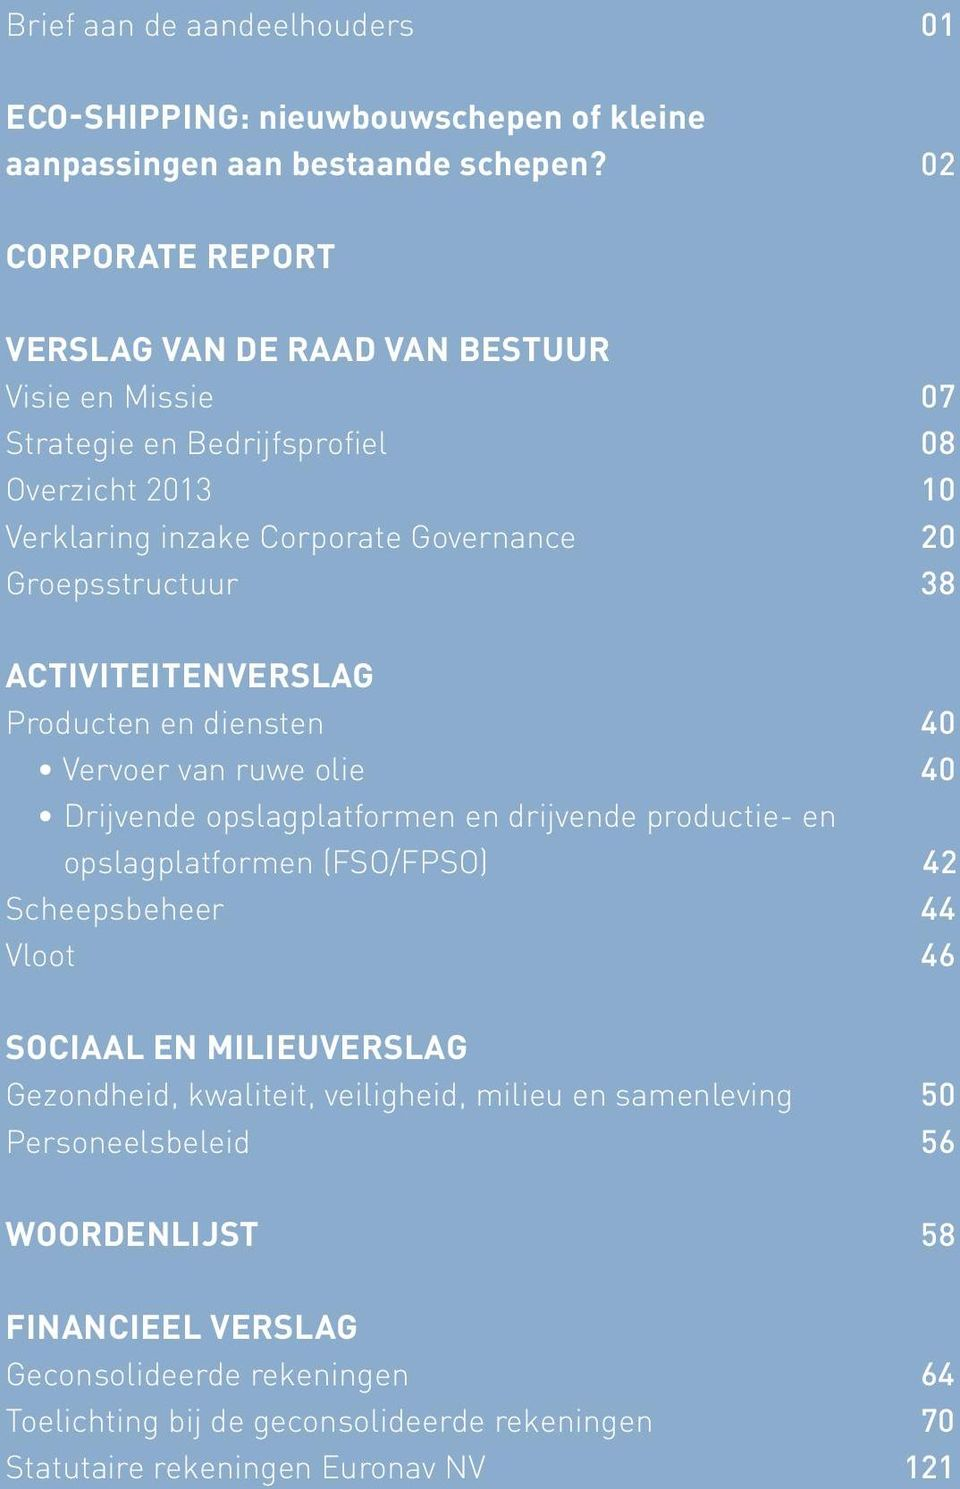 06 02 Strategie Strategy and en bedrijfsprofiel company profile 08 Overzicht Highlights CORPORATE 2011 REPORT 10 Verklaring Corporate Governance inzake Corporate statement Governance 20